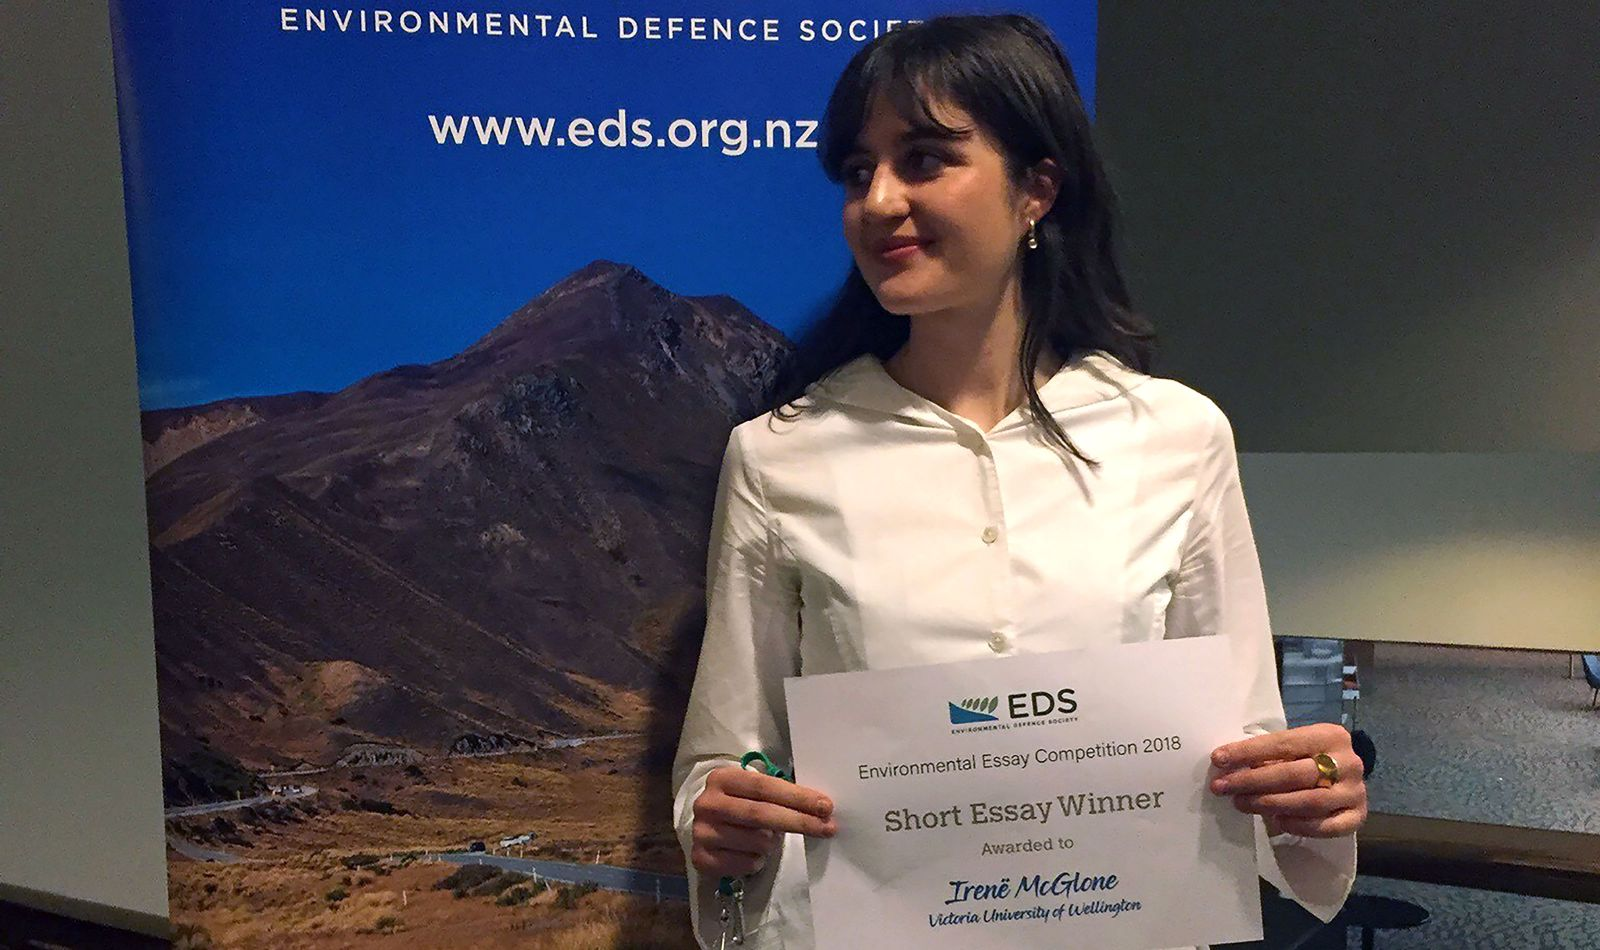 Irene McGlone at the Environmetal Defence Society conference